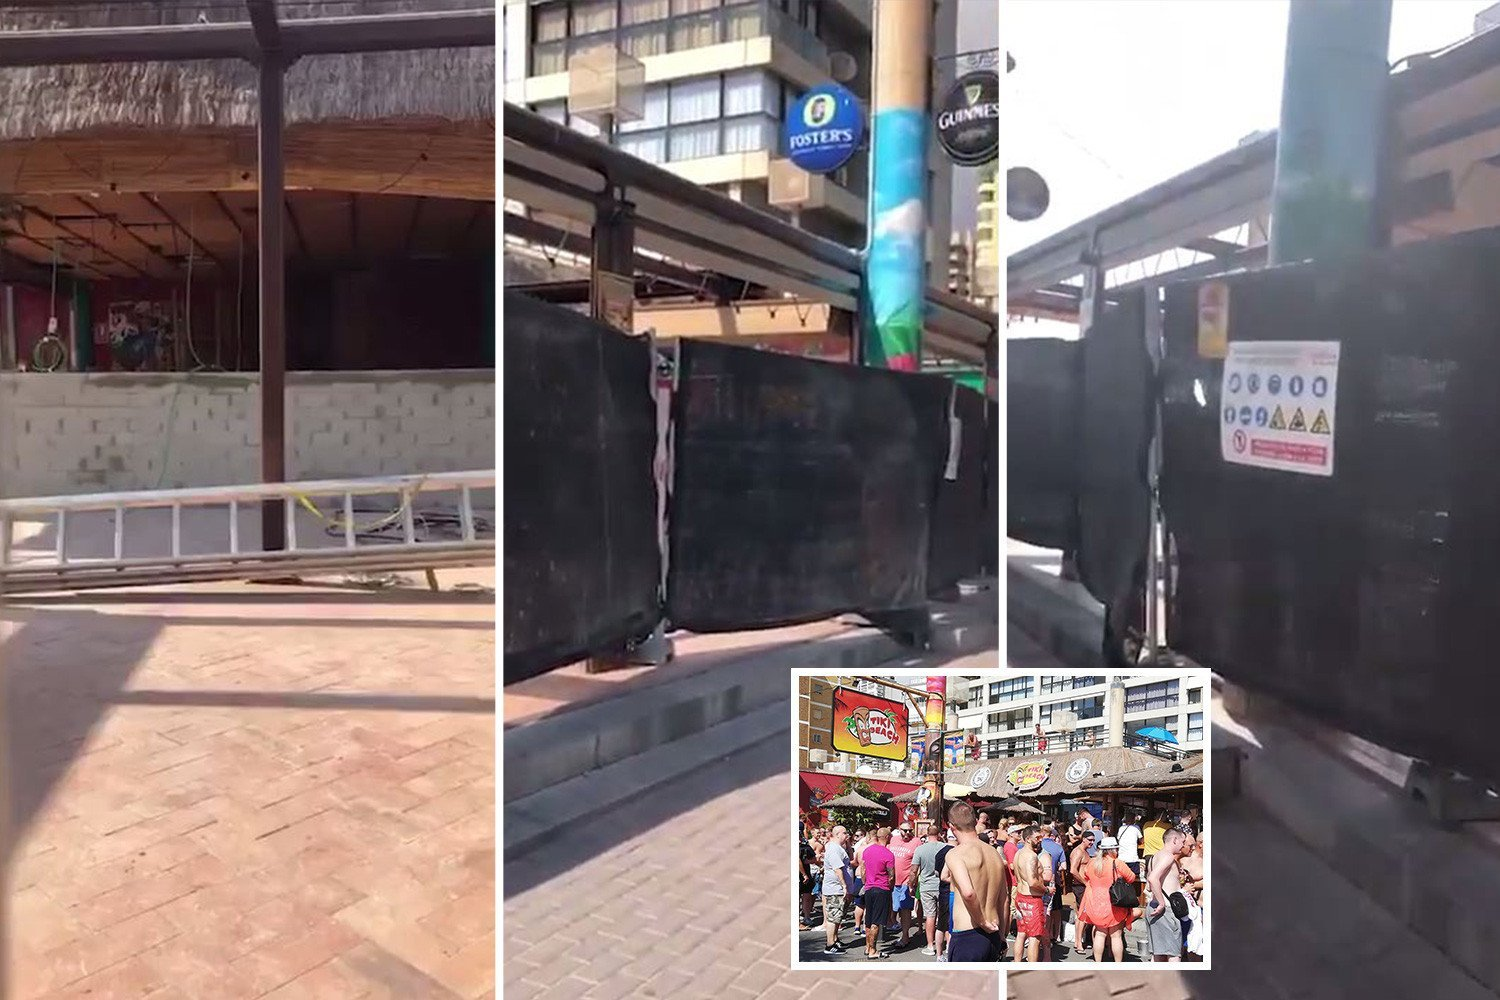 Brit tourists shocked to see Benidorm's famous Tiki Beach bar reduced to a building site after court battle forced it to close